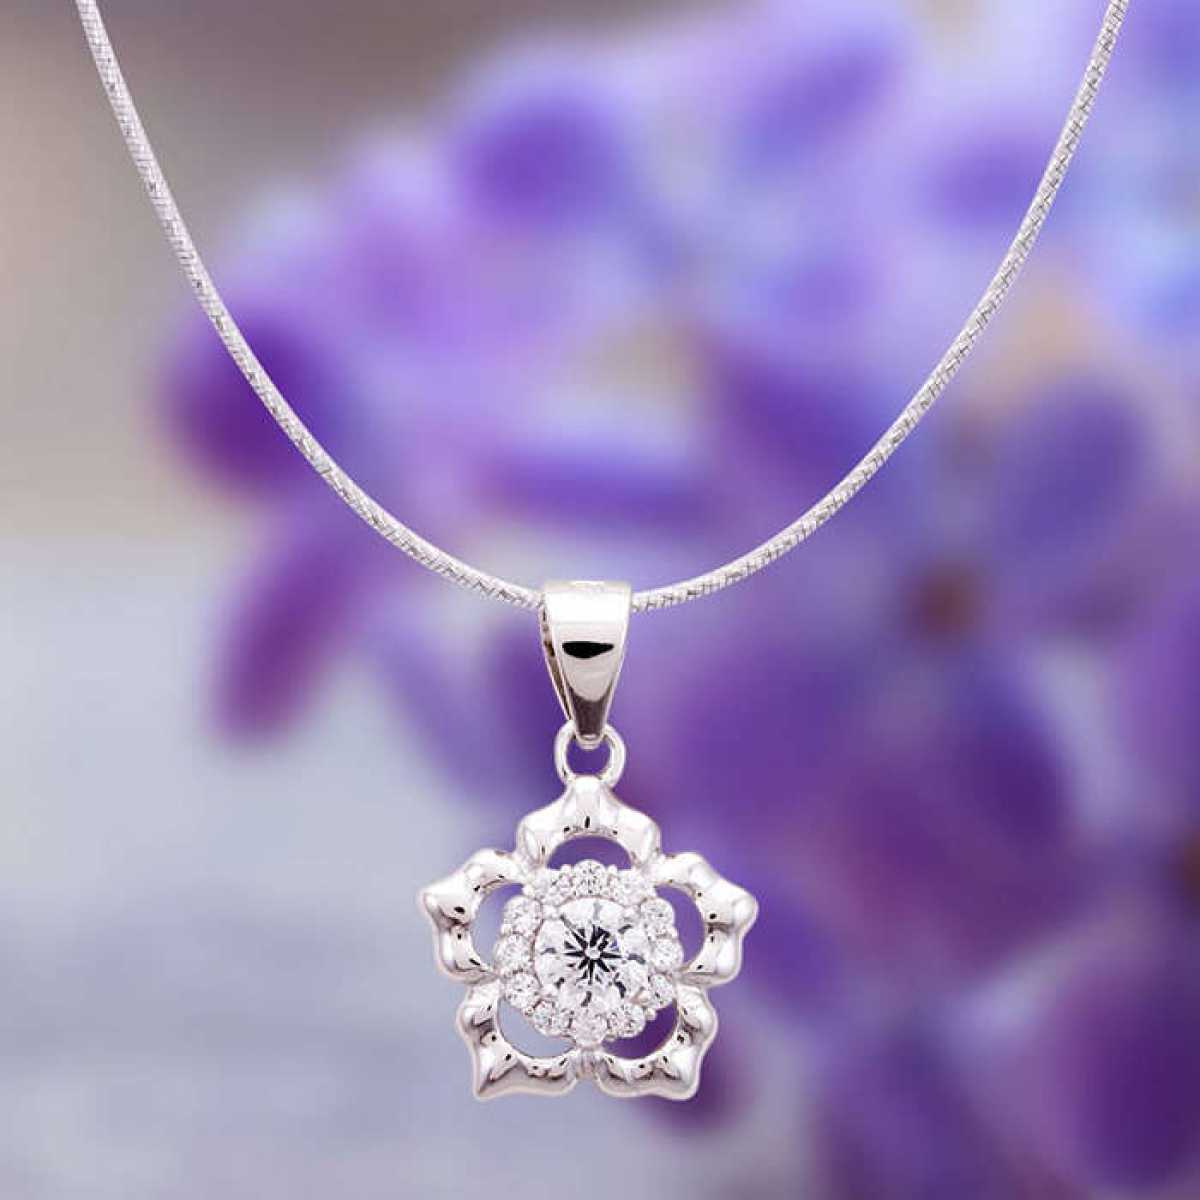 Royal Queen Style Sterling Silver Pendant Set